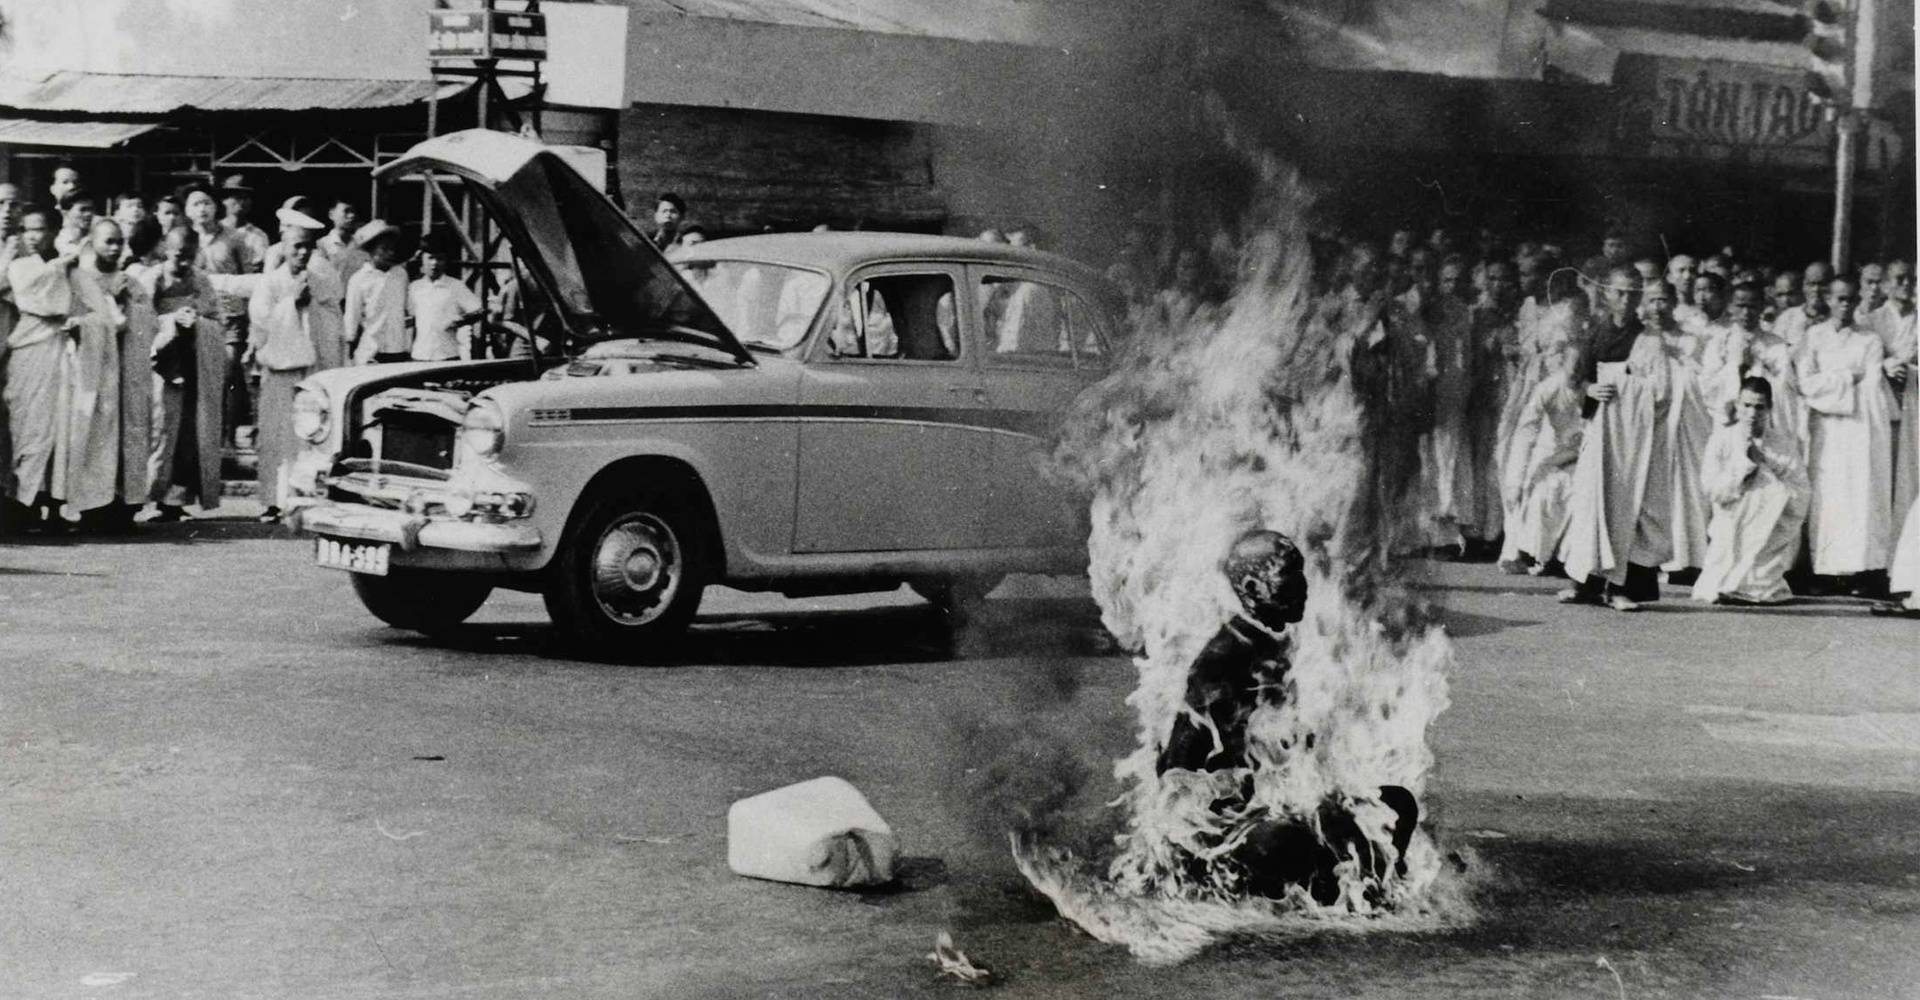 Buddhist monk Thich Quang Duc sets himself ablaze in protest against alleged religious persecution by the South Vietnamese government, Saigon - June 1963